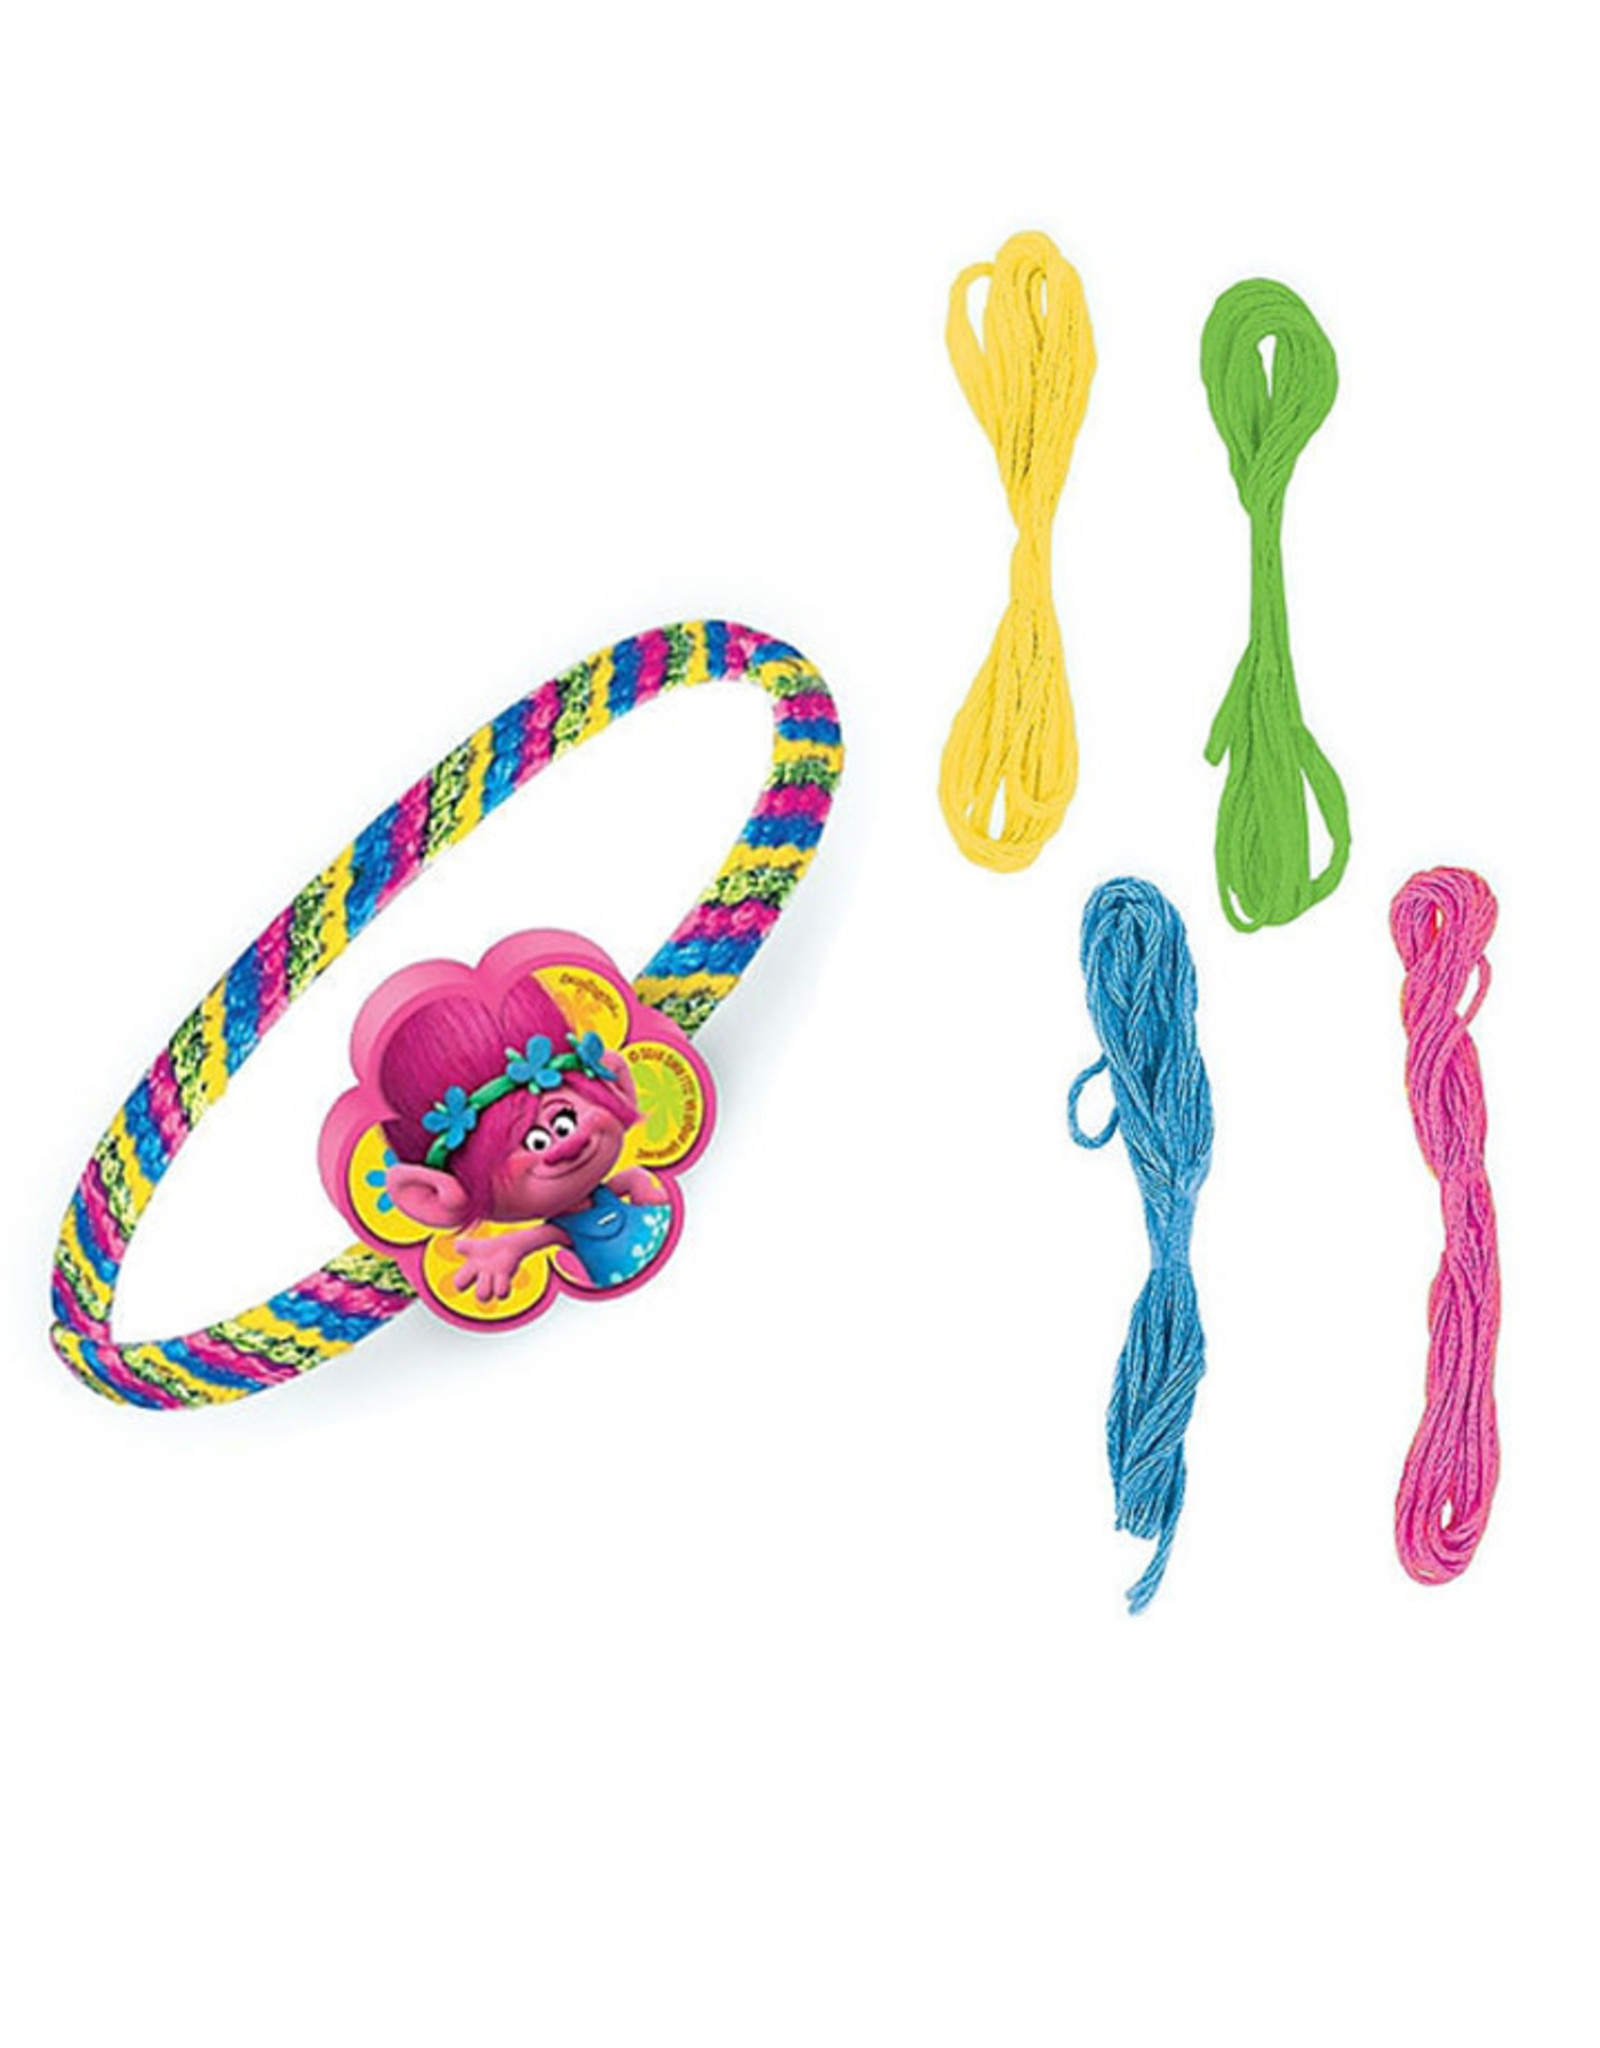 Trolls Friendship Bracelet Kits - 12ct